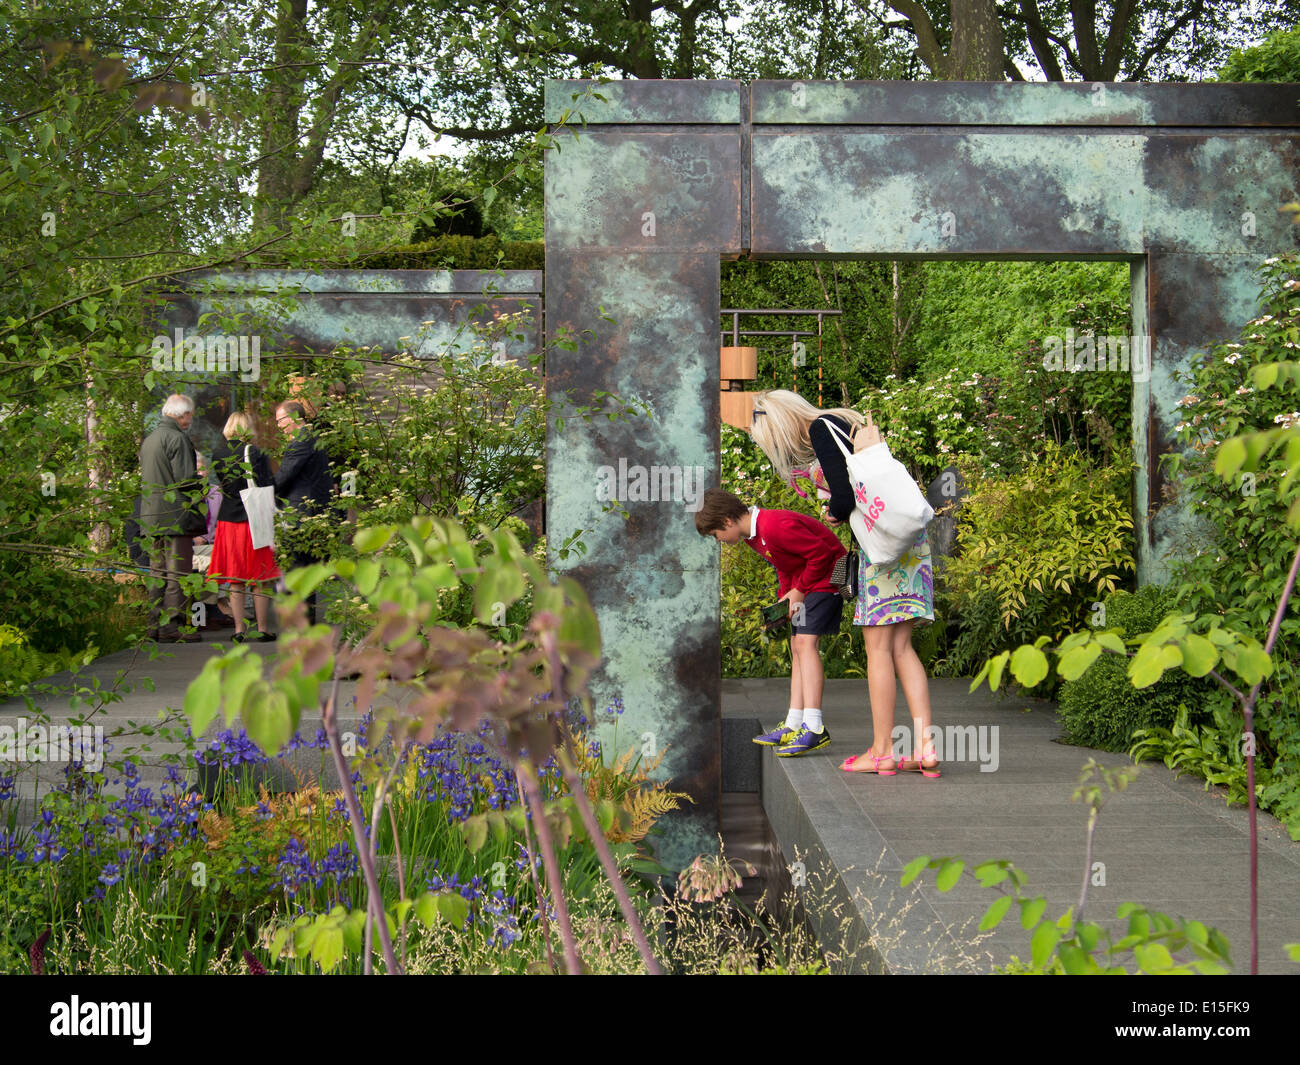 Chelsea, London, UK. 22nd May 2014. Visitors to Chelsea Flower Show 2014 Credit:  Martyn Goddard/Alamy Live News Stock Photo